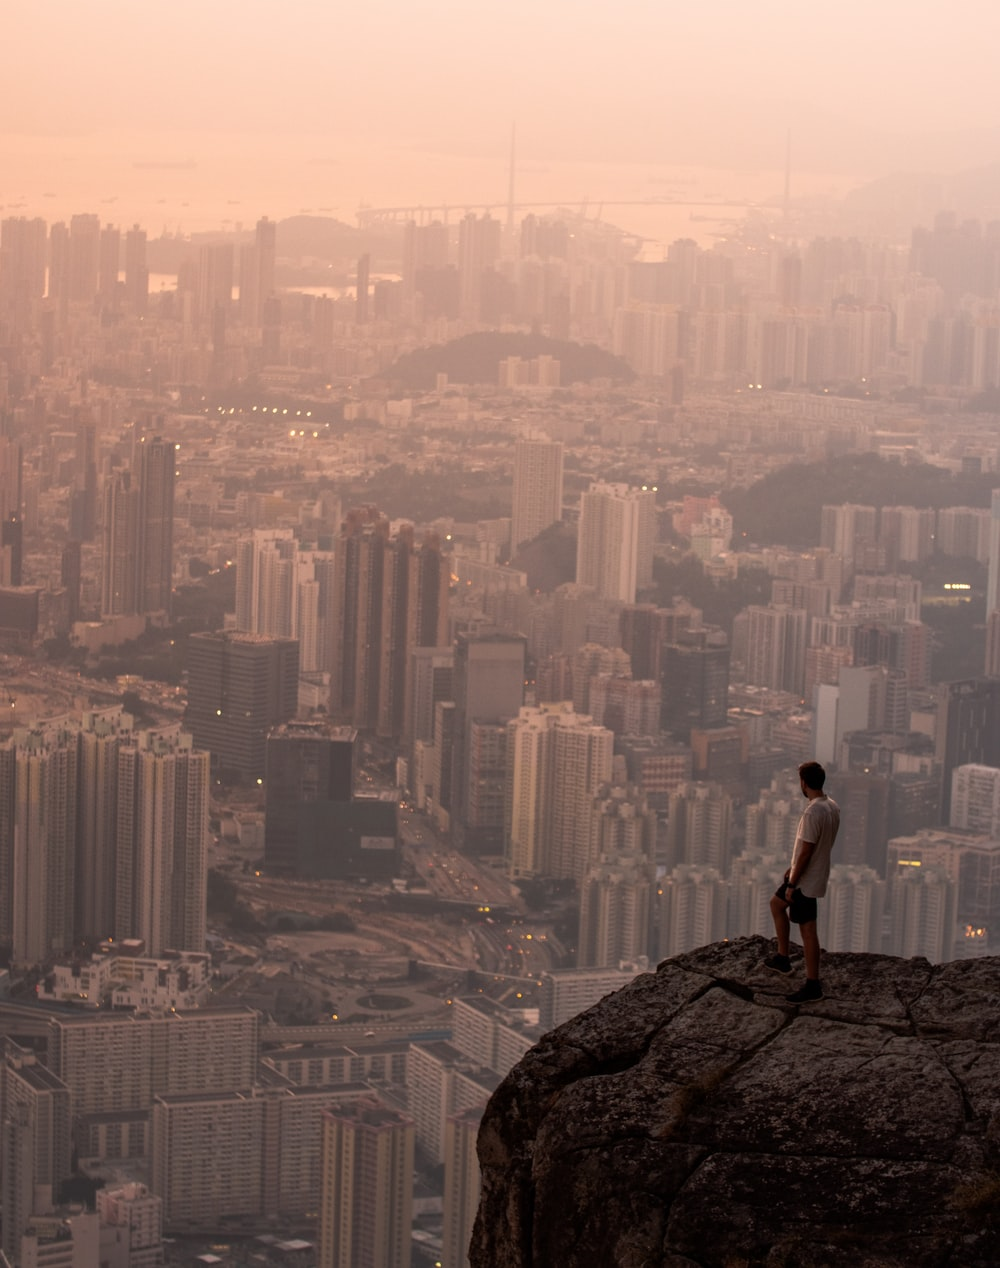 man sitting on rock looking at city skyline during daytime